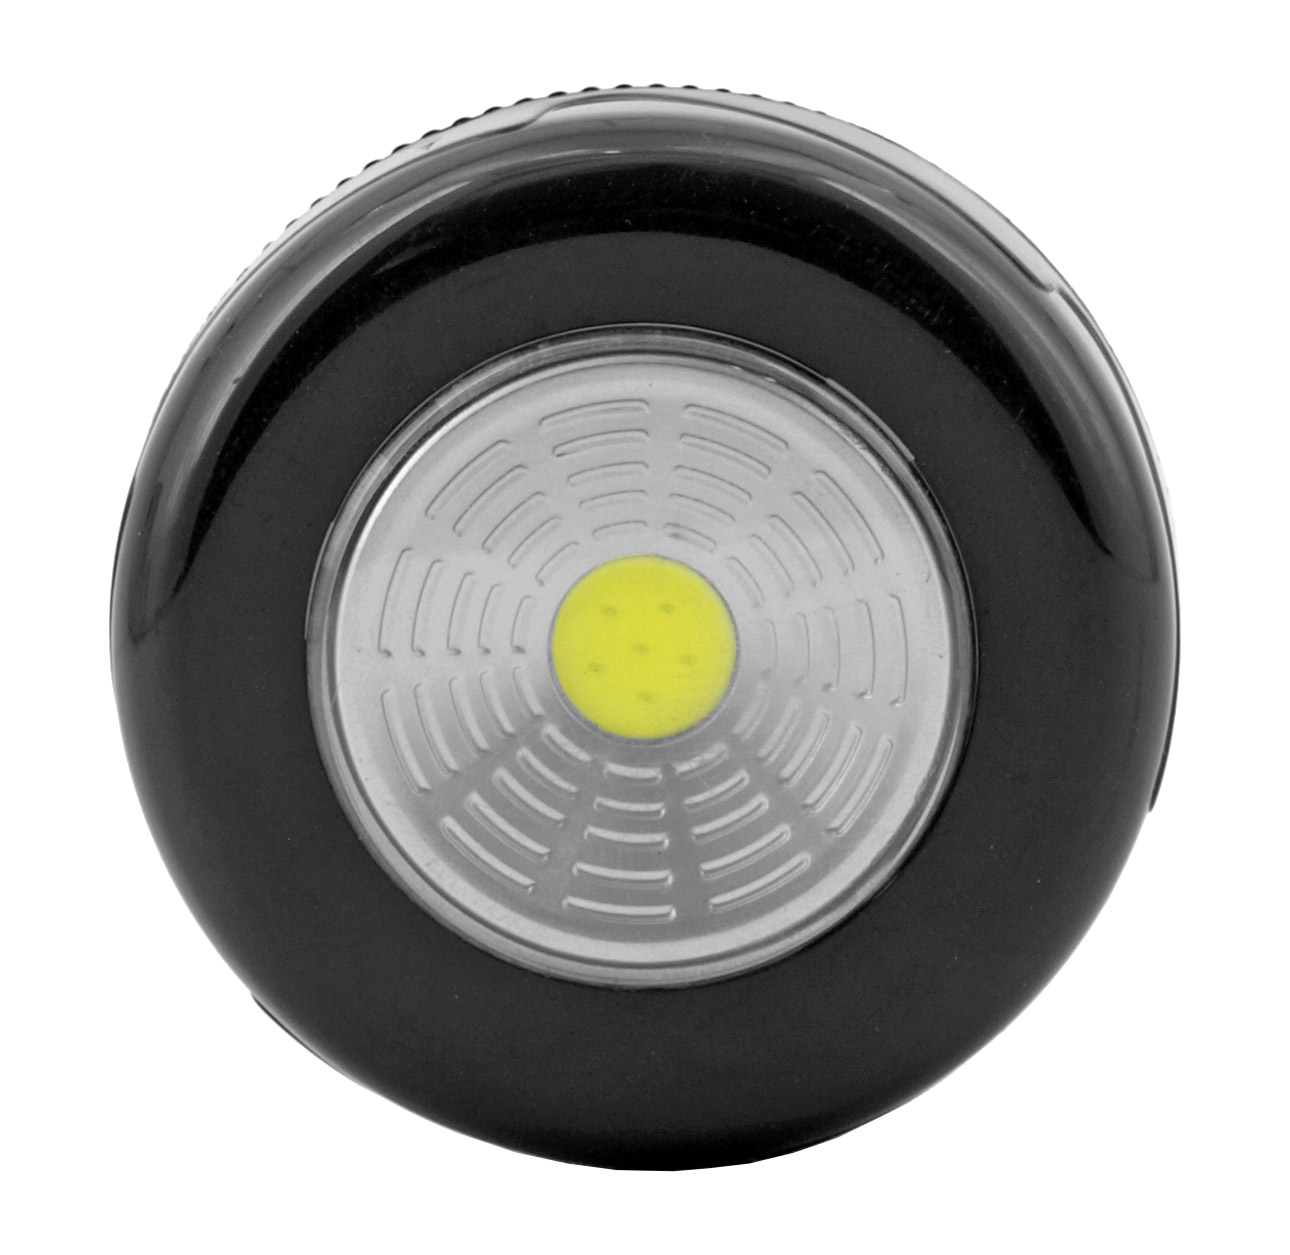 COB LED Push Button Tap Light